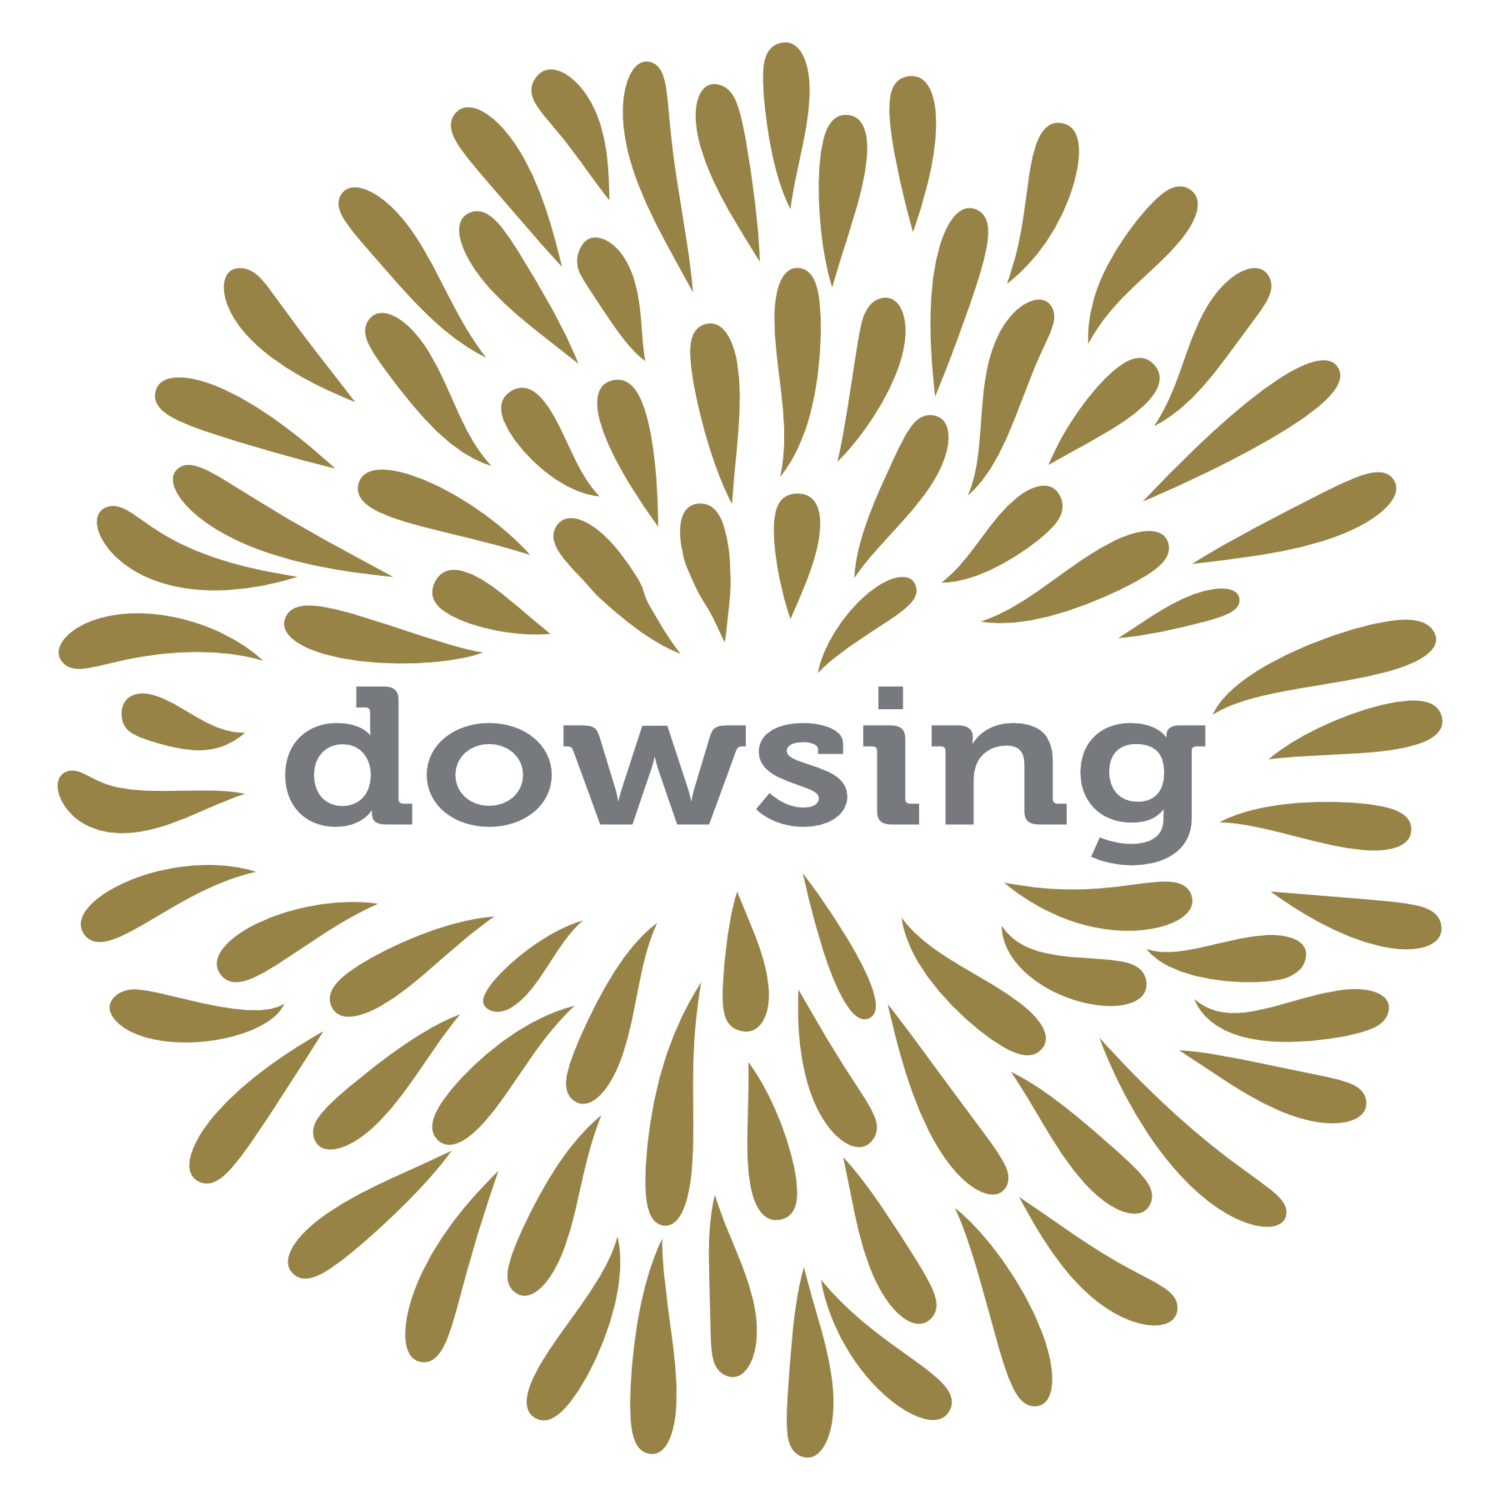 The Sacred Science of Dowsing